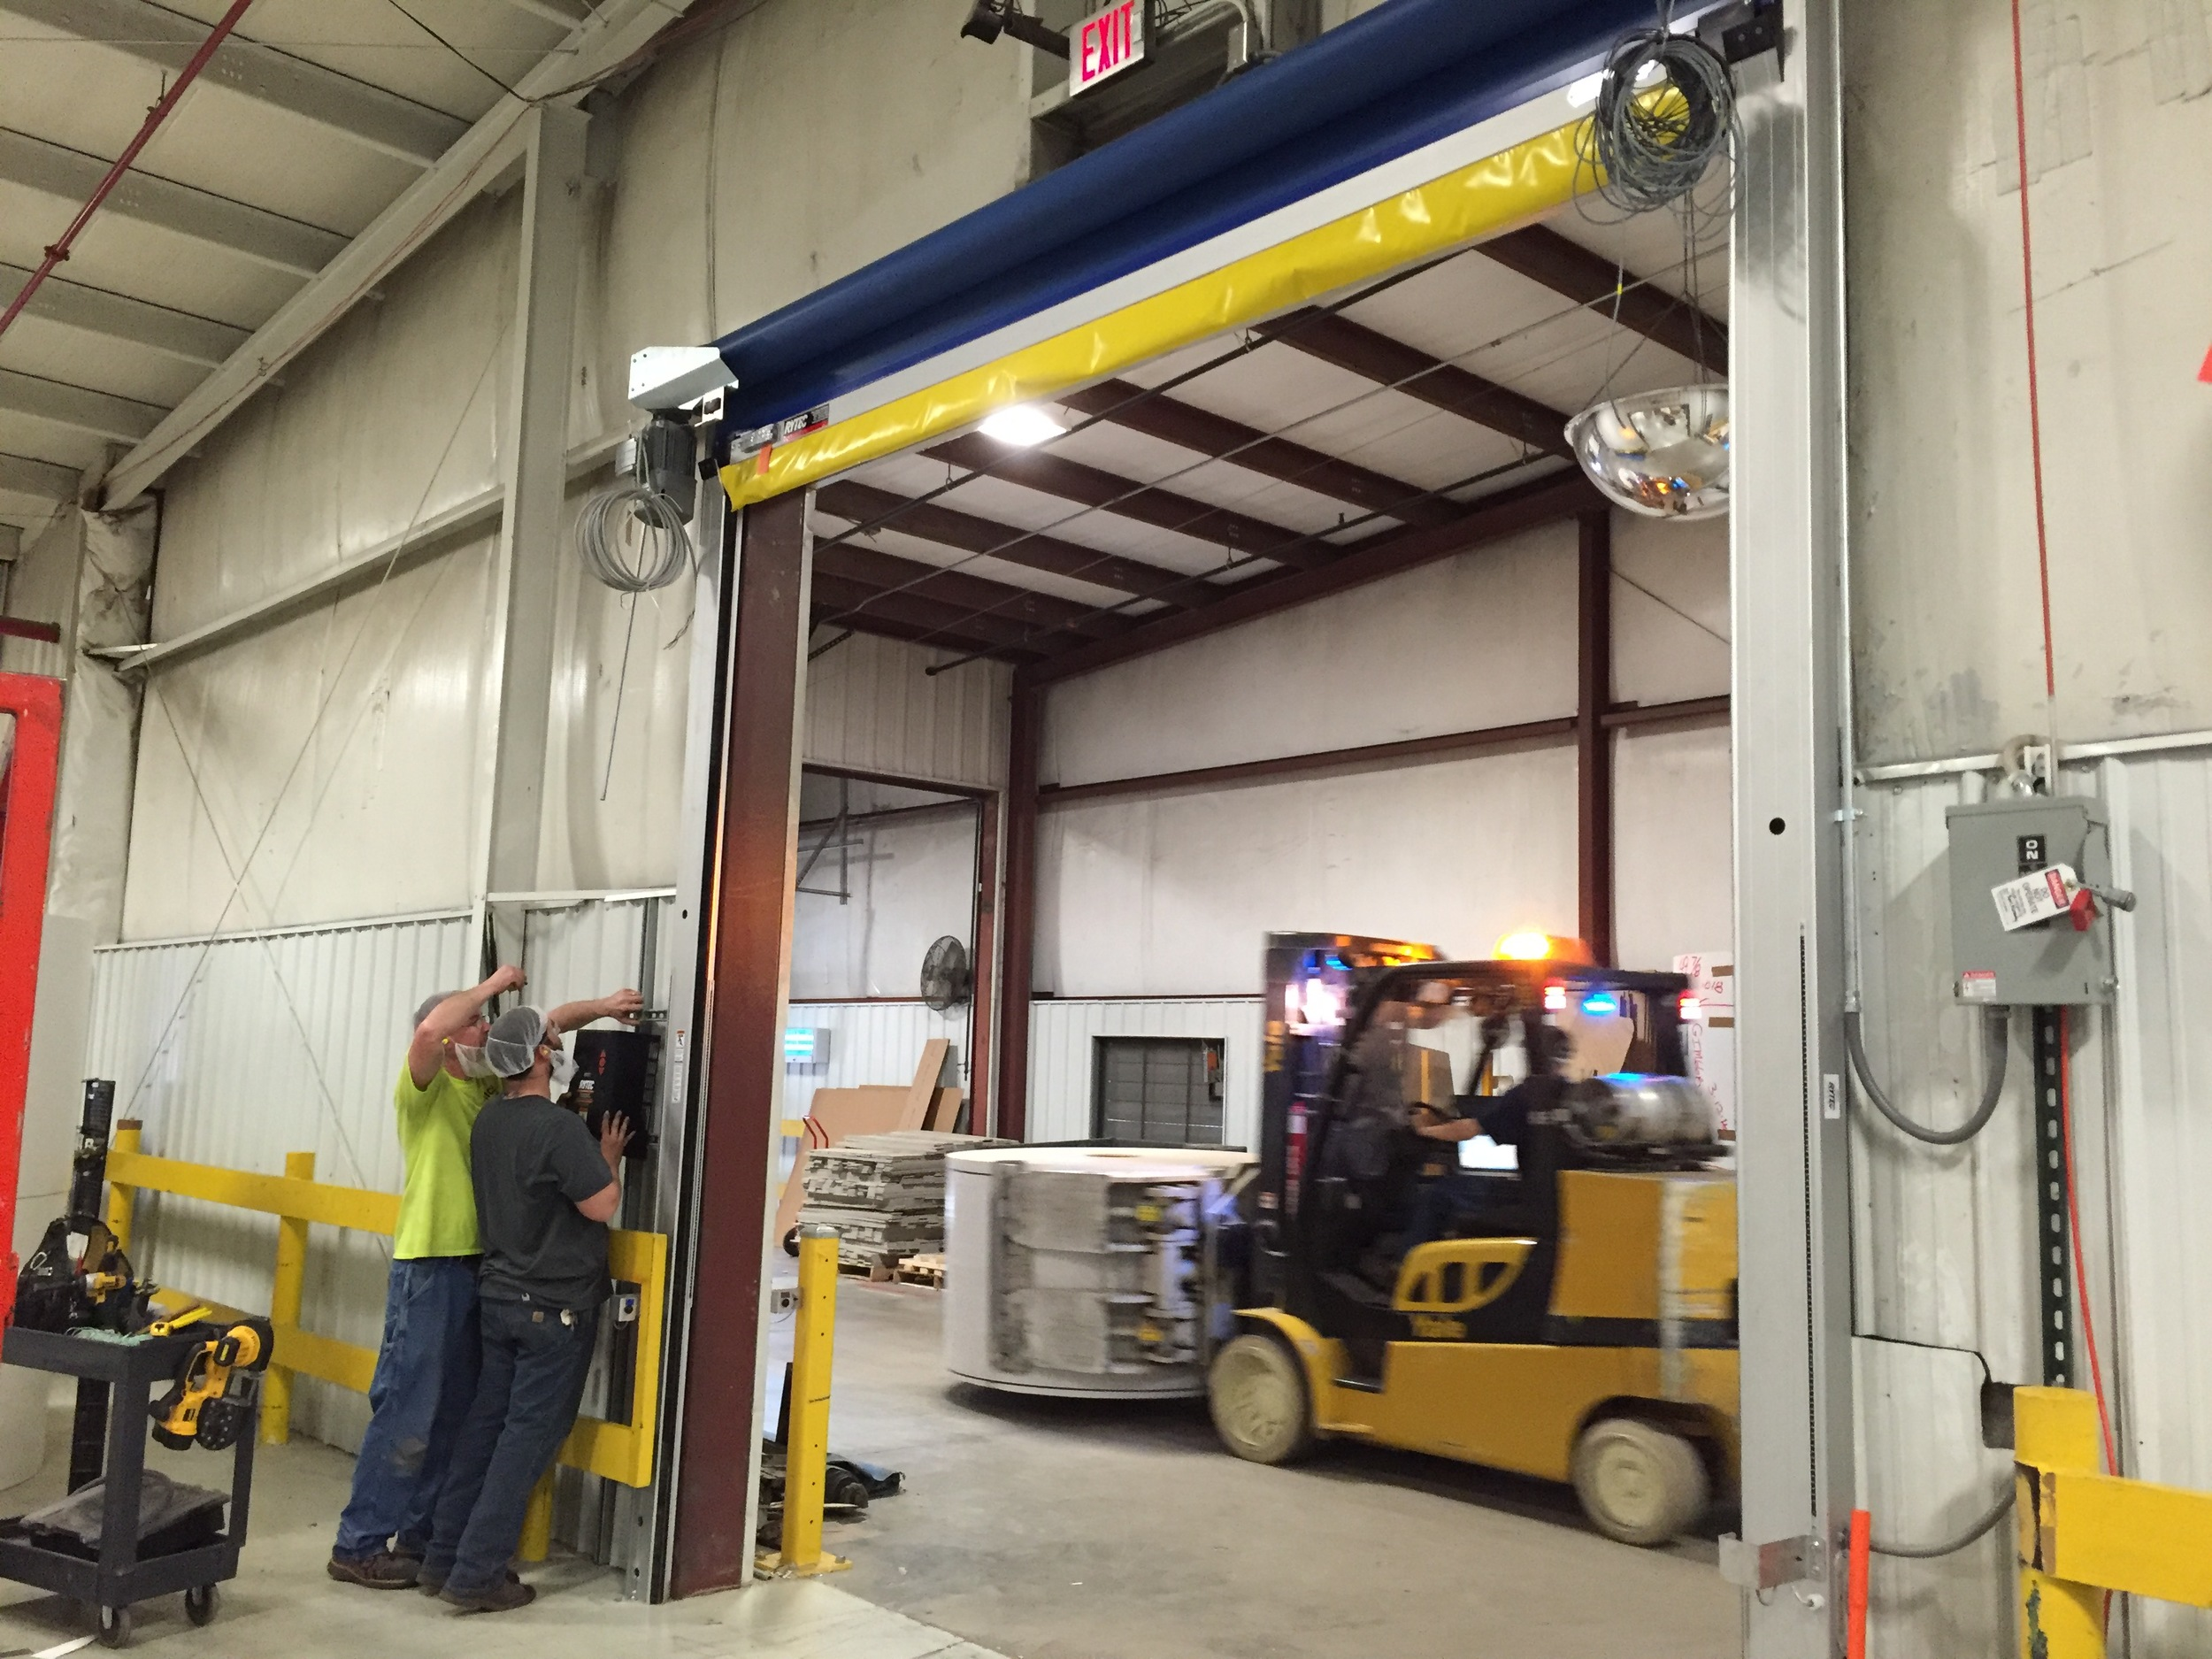 Rice Equipment Provides Turnkey Installation. Helping Your Facility Operate at Full-Speed.